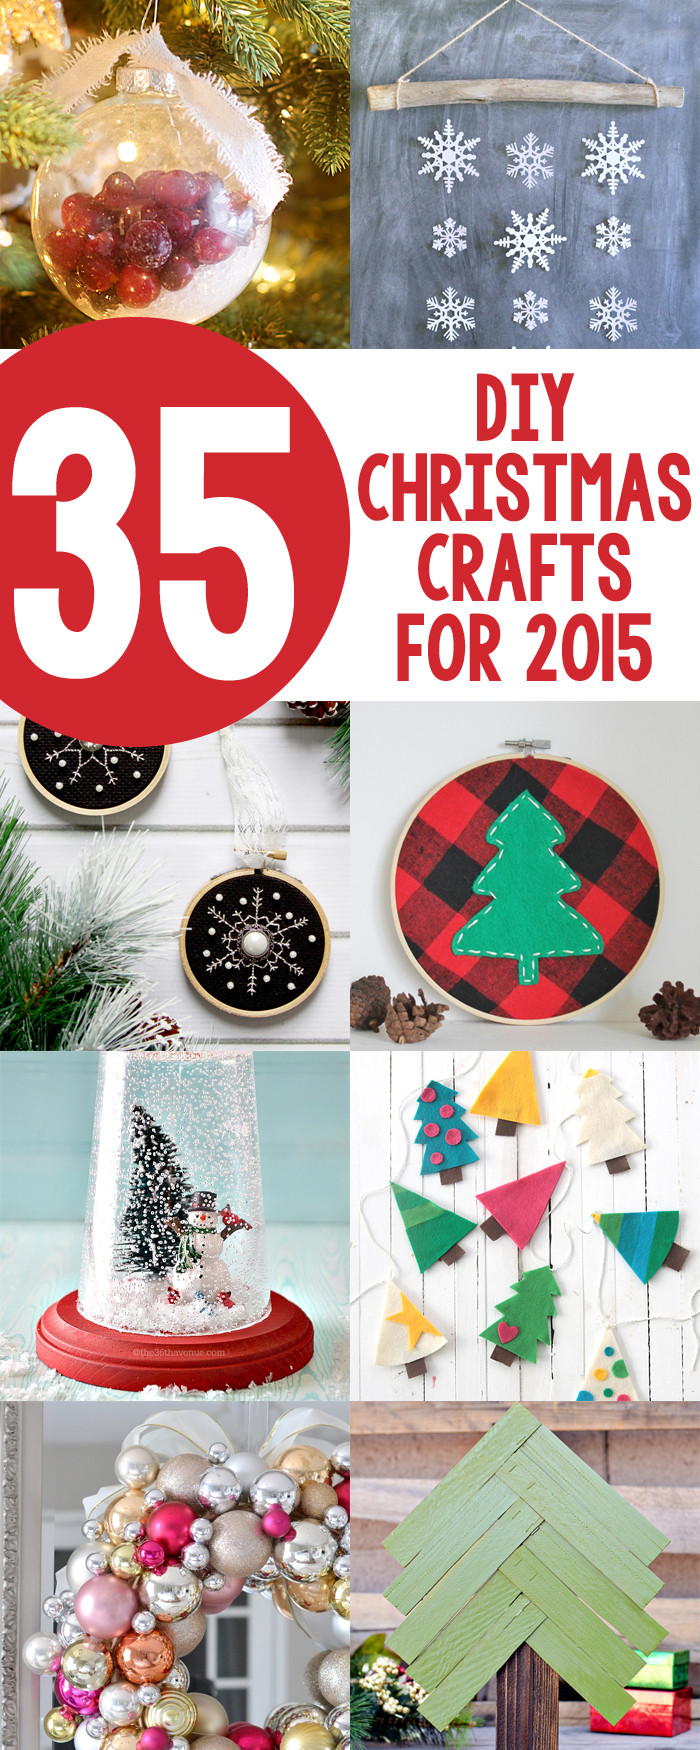 Christmas DIY Crafts  35 DIY Christmas Crafts for 2015 Yellow Bliss Road